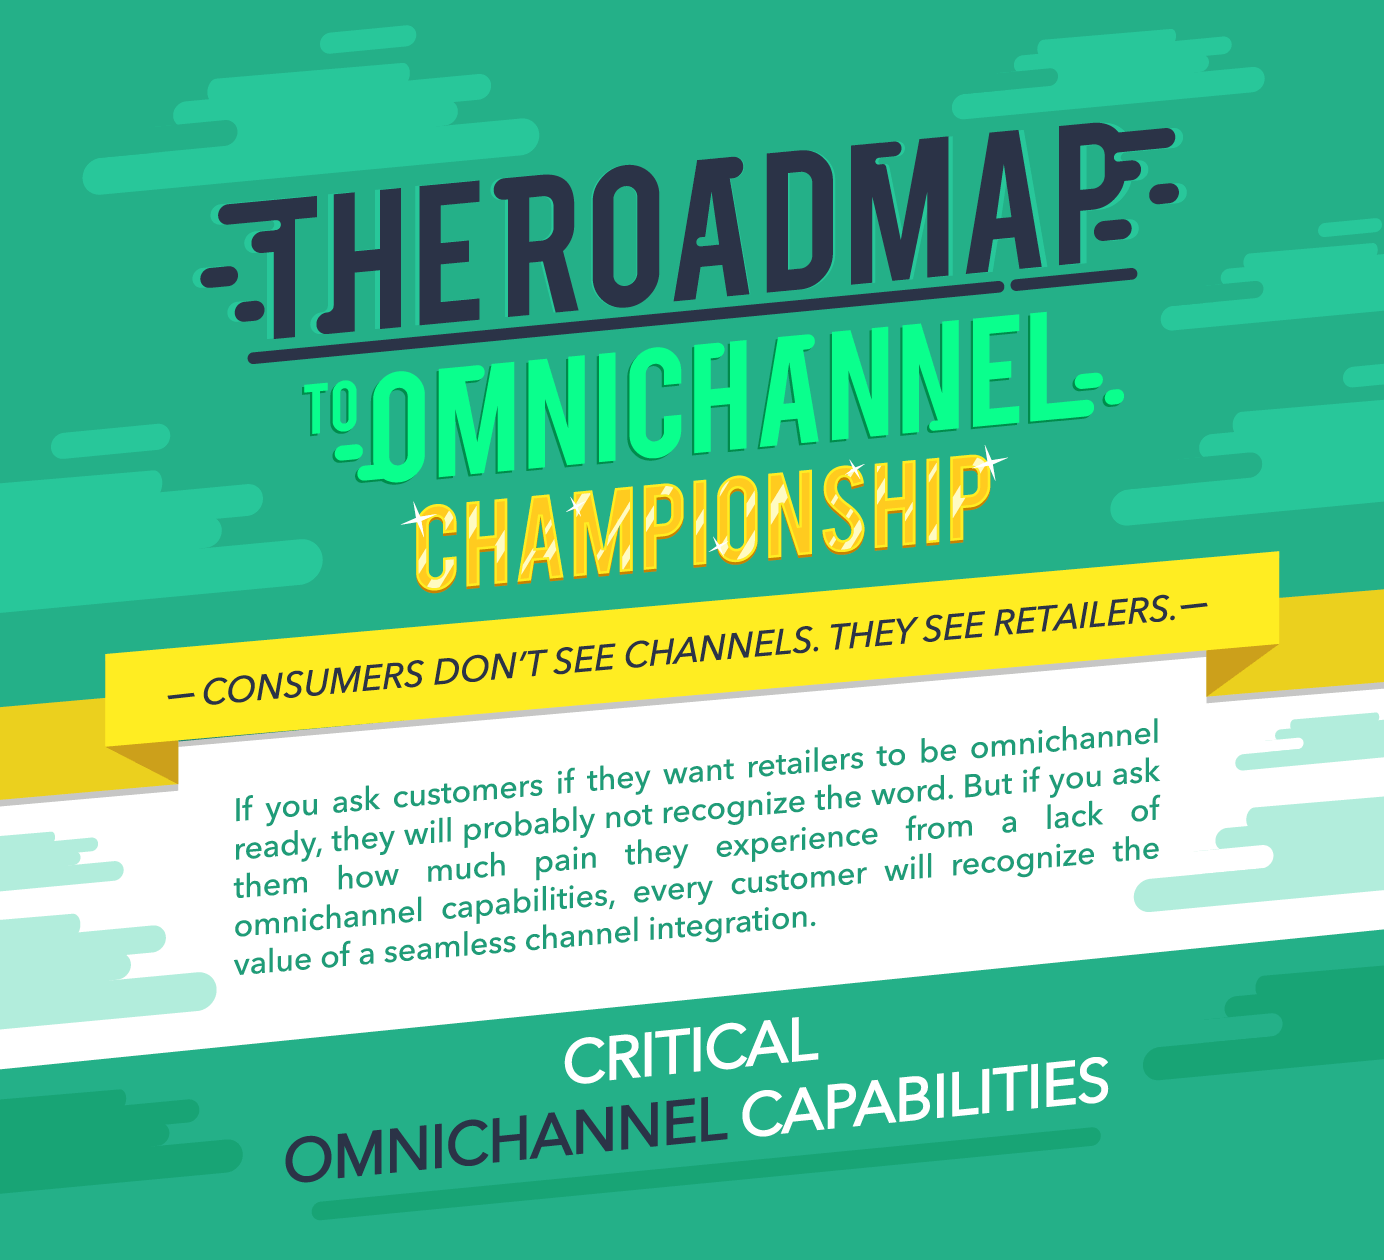 Infographic_Roadmap to omnichannel championship_EN.png